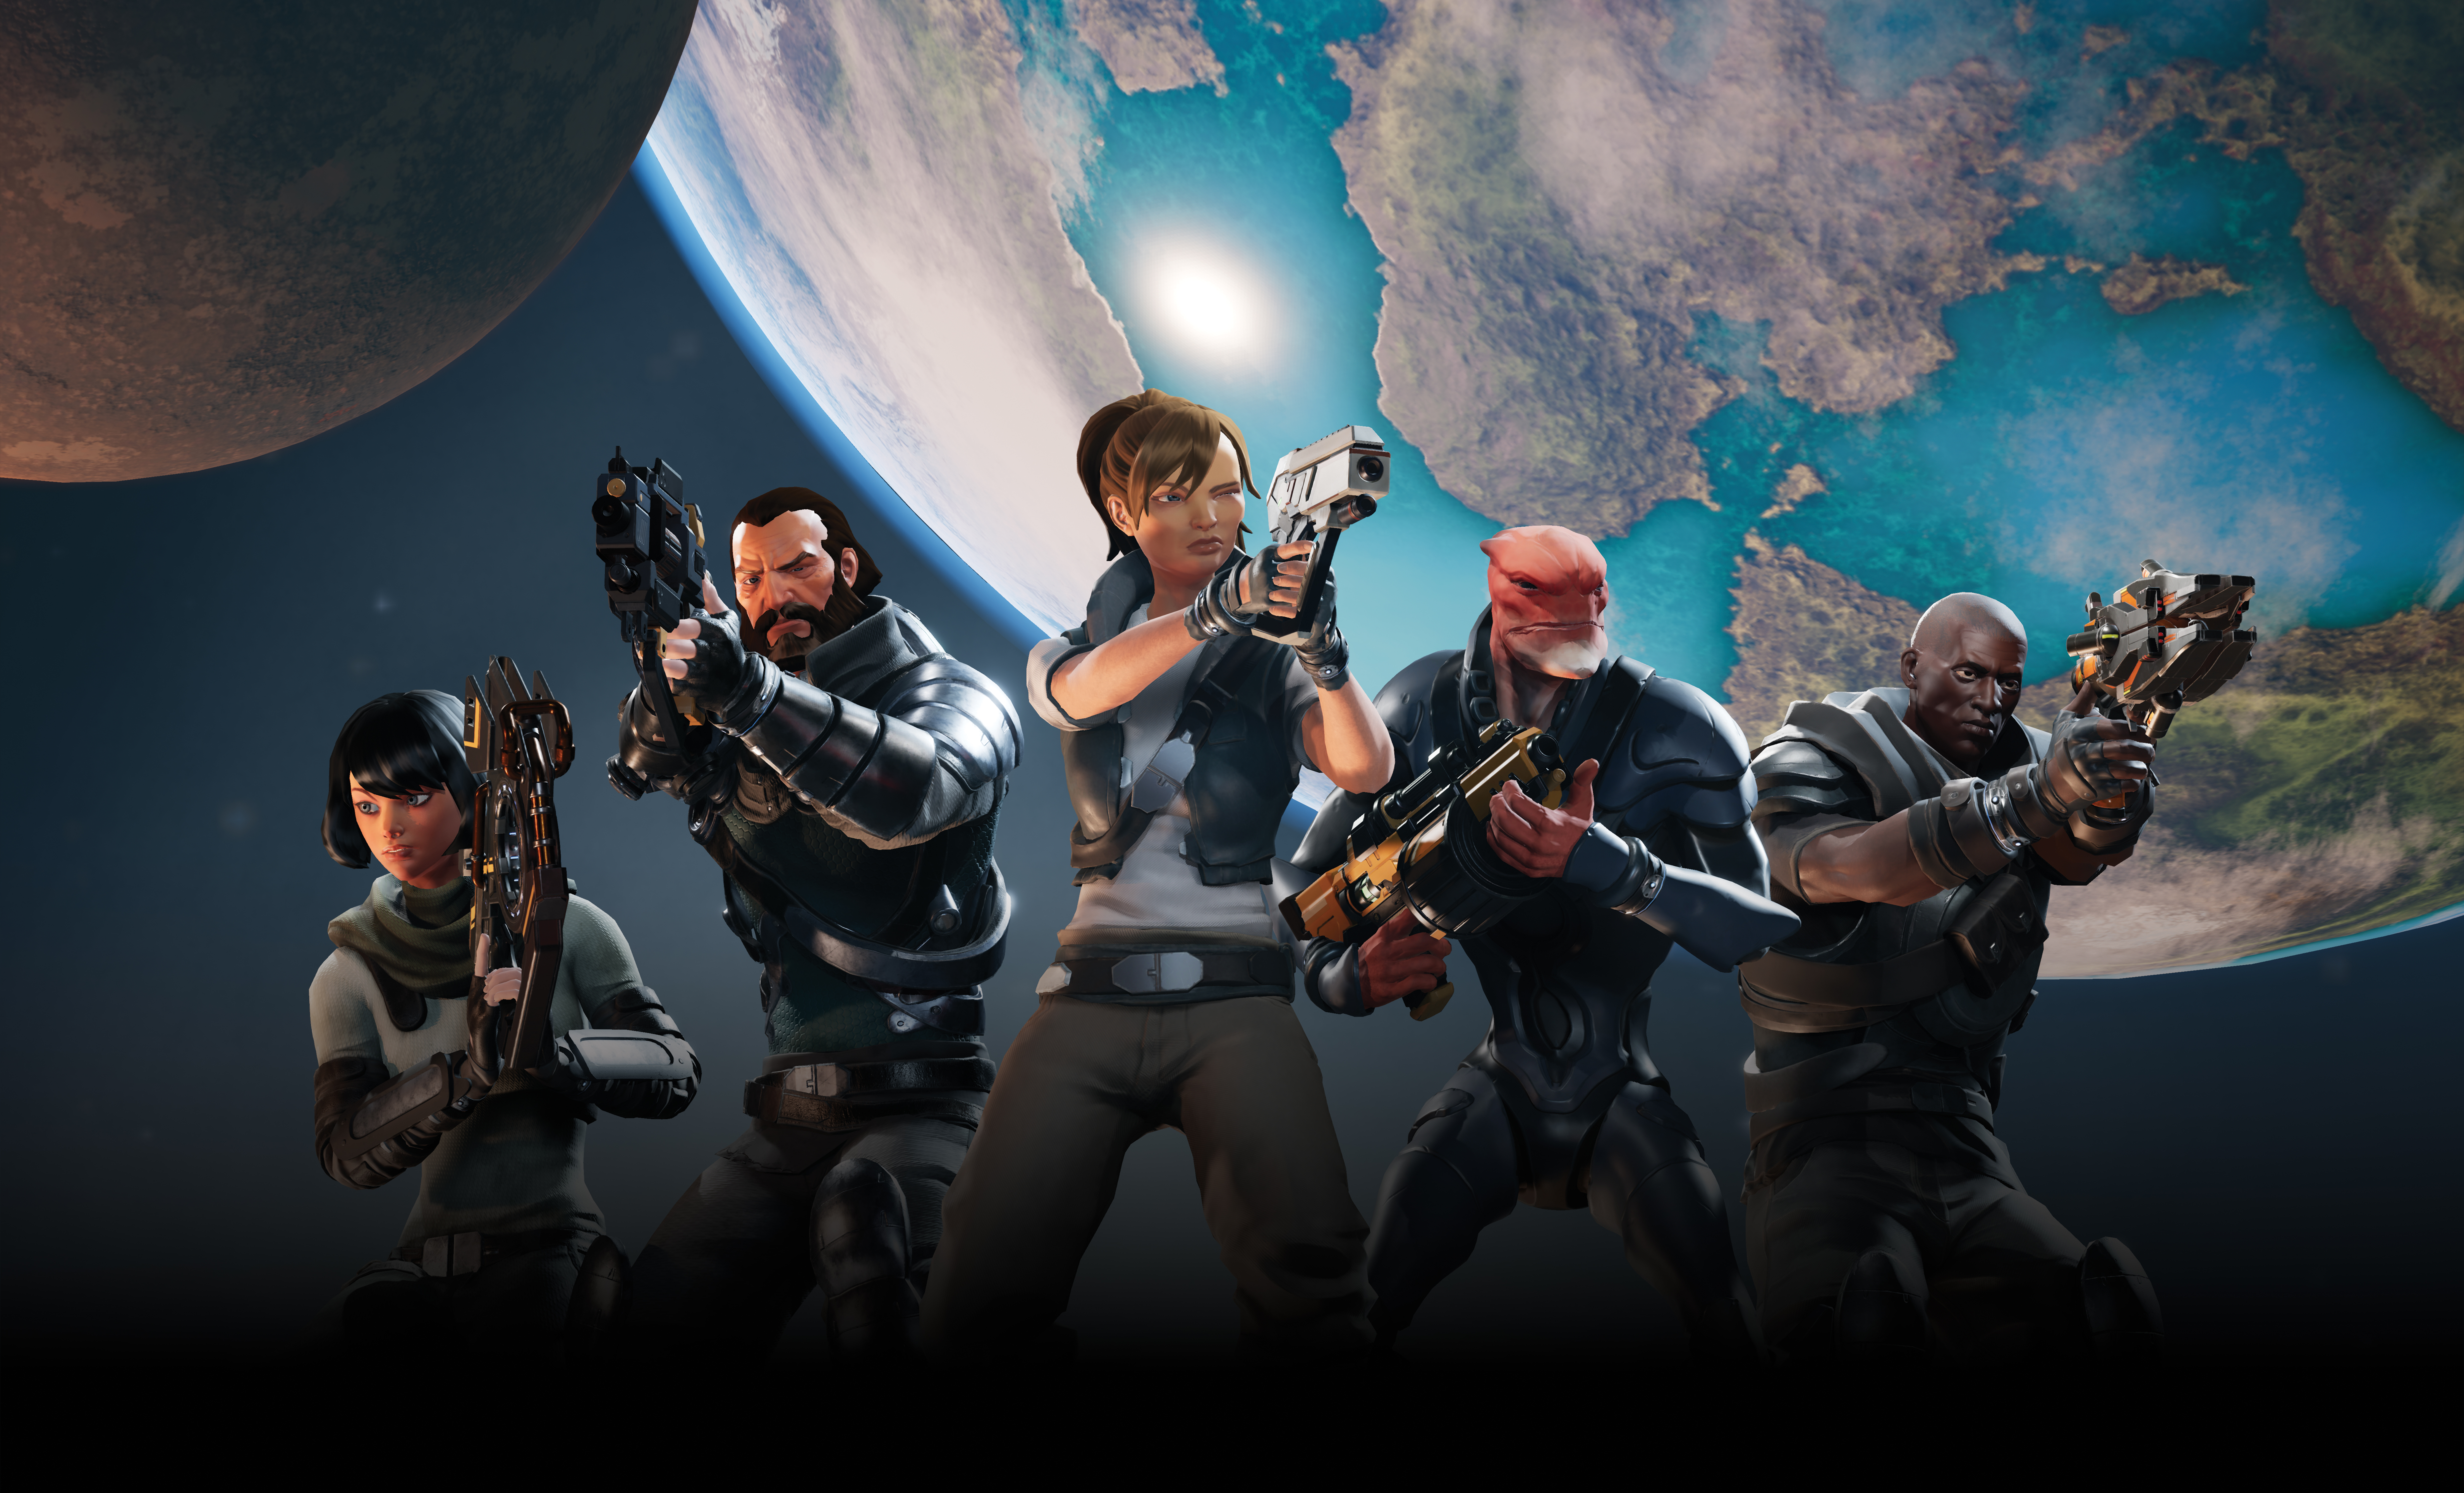 VR Shooter From Other Suns Will Be Hosting An Open Beta At The End Of The Month